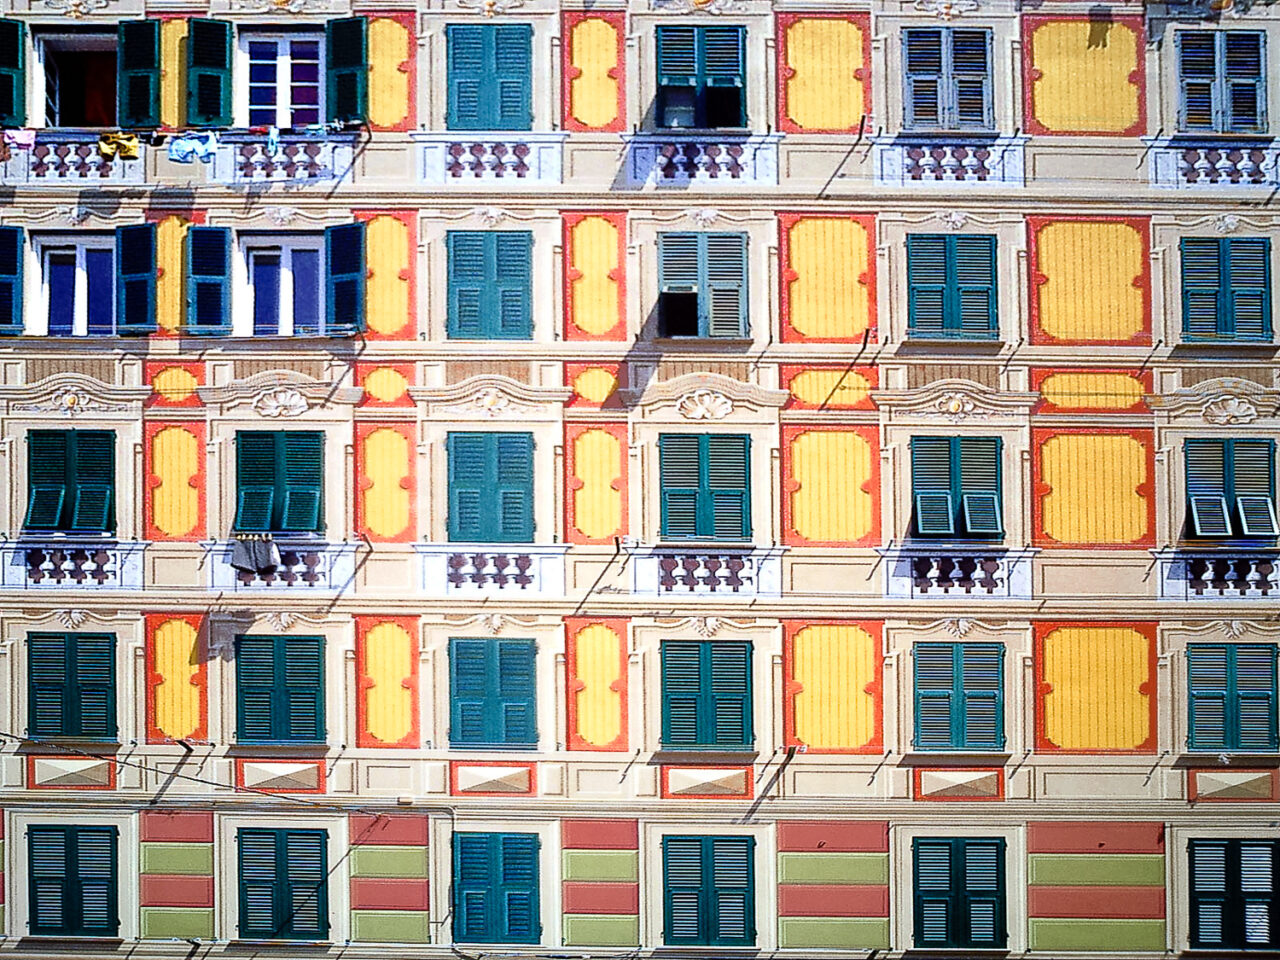 Camogli windows. Some of them are real, some not. Can you recognize the fakes?